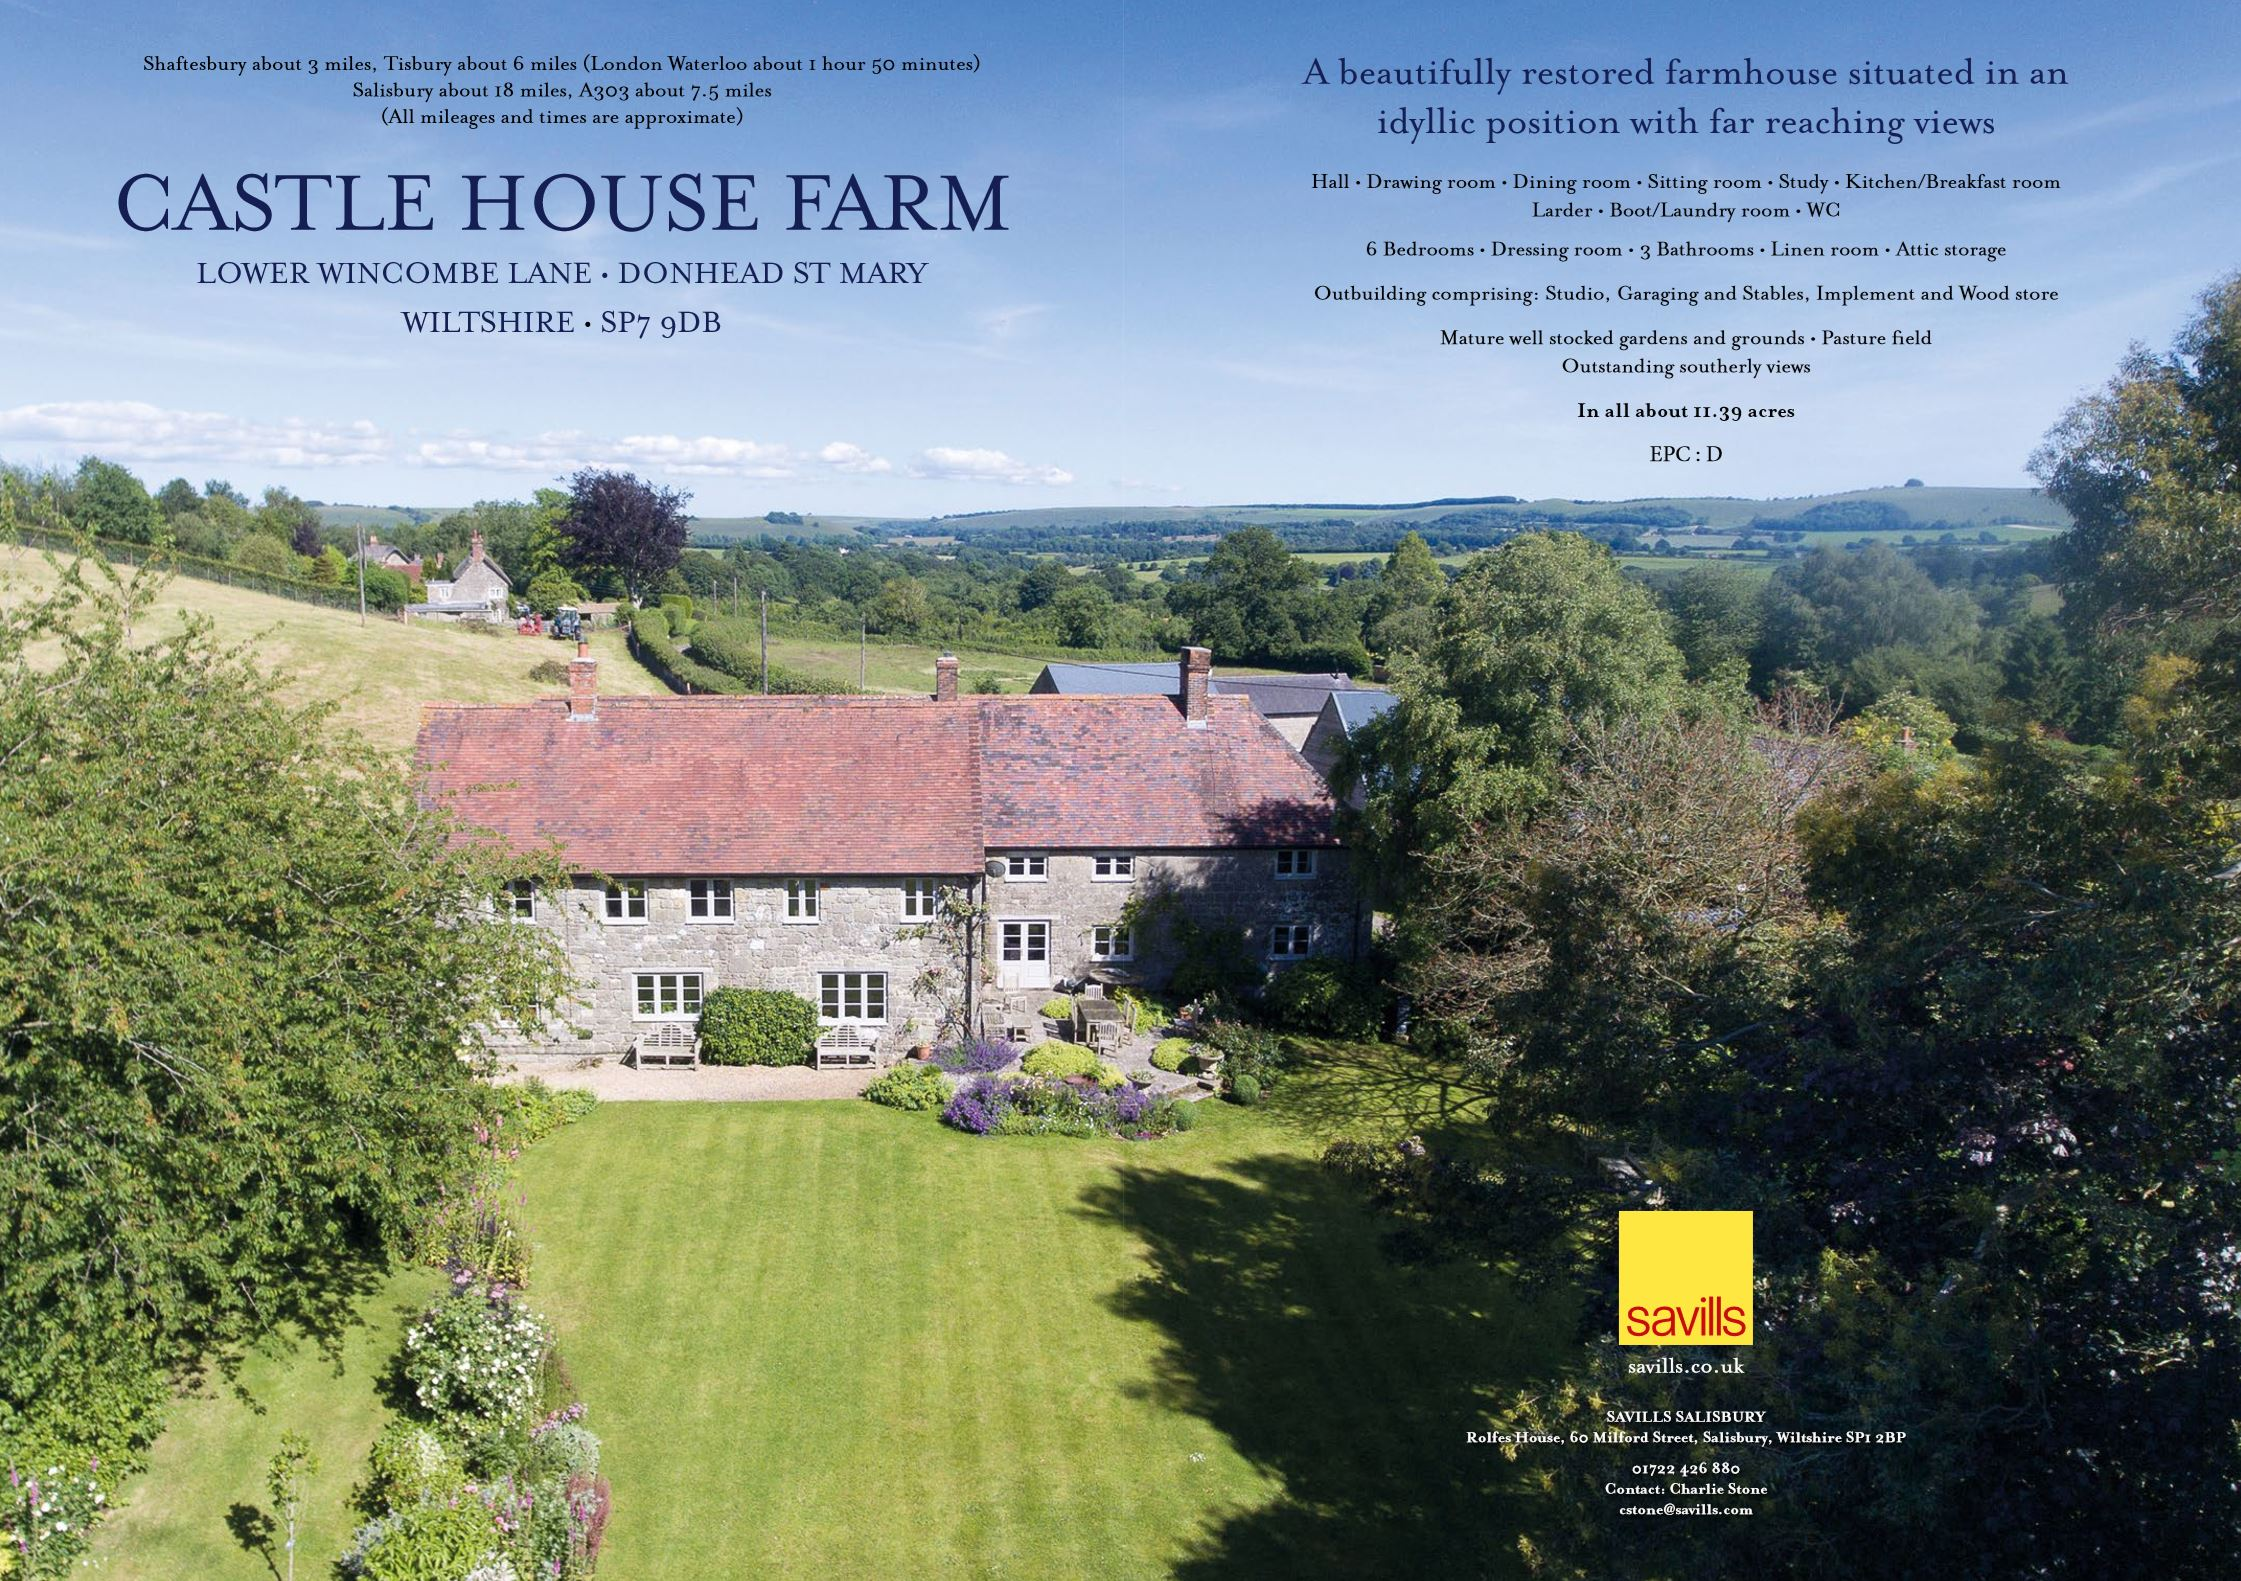 Restored Wiltshire Farmhouse with JD Kitchen Goes on Sale